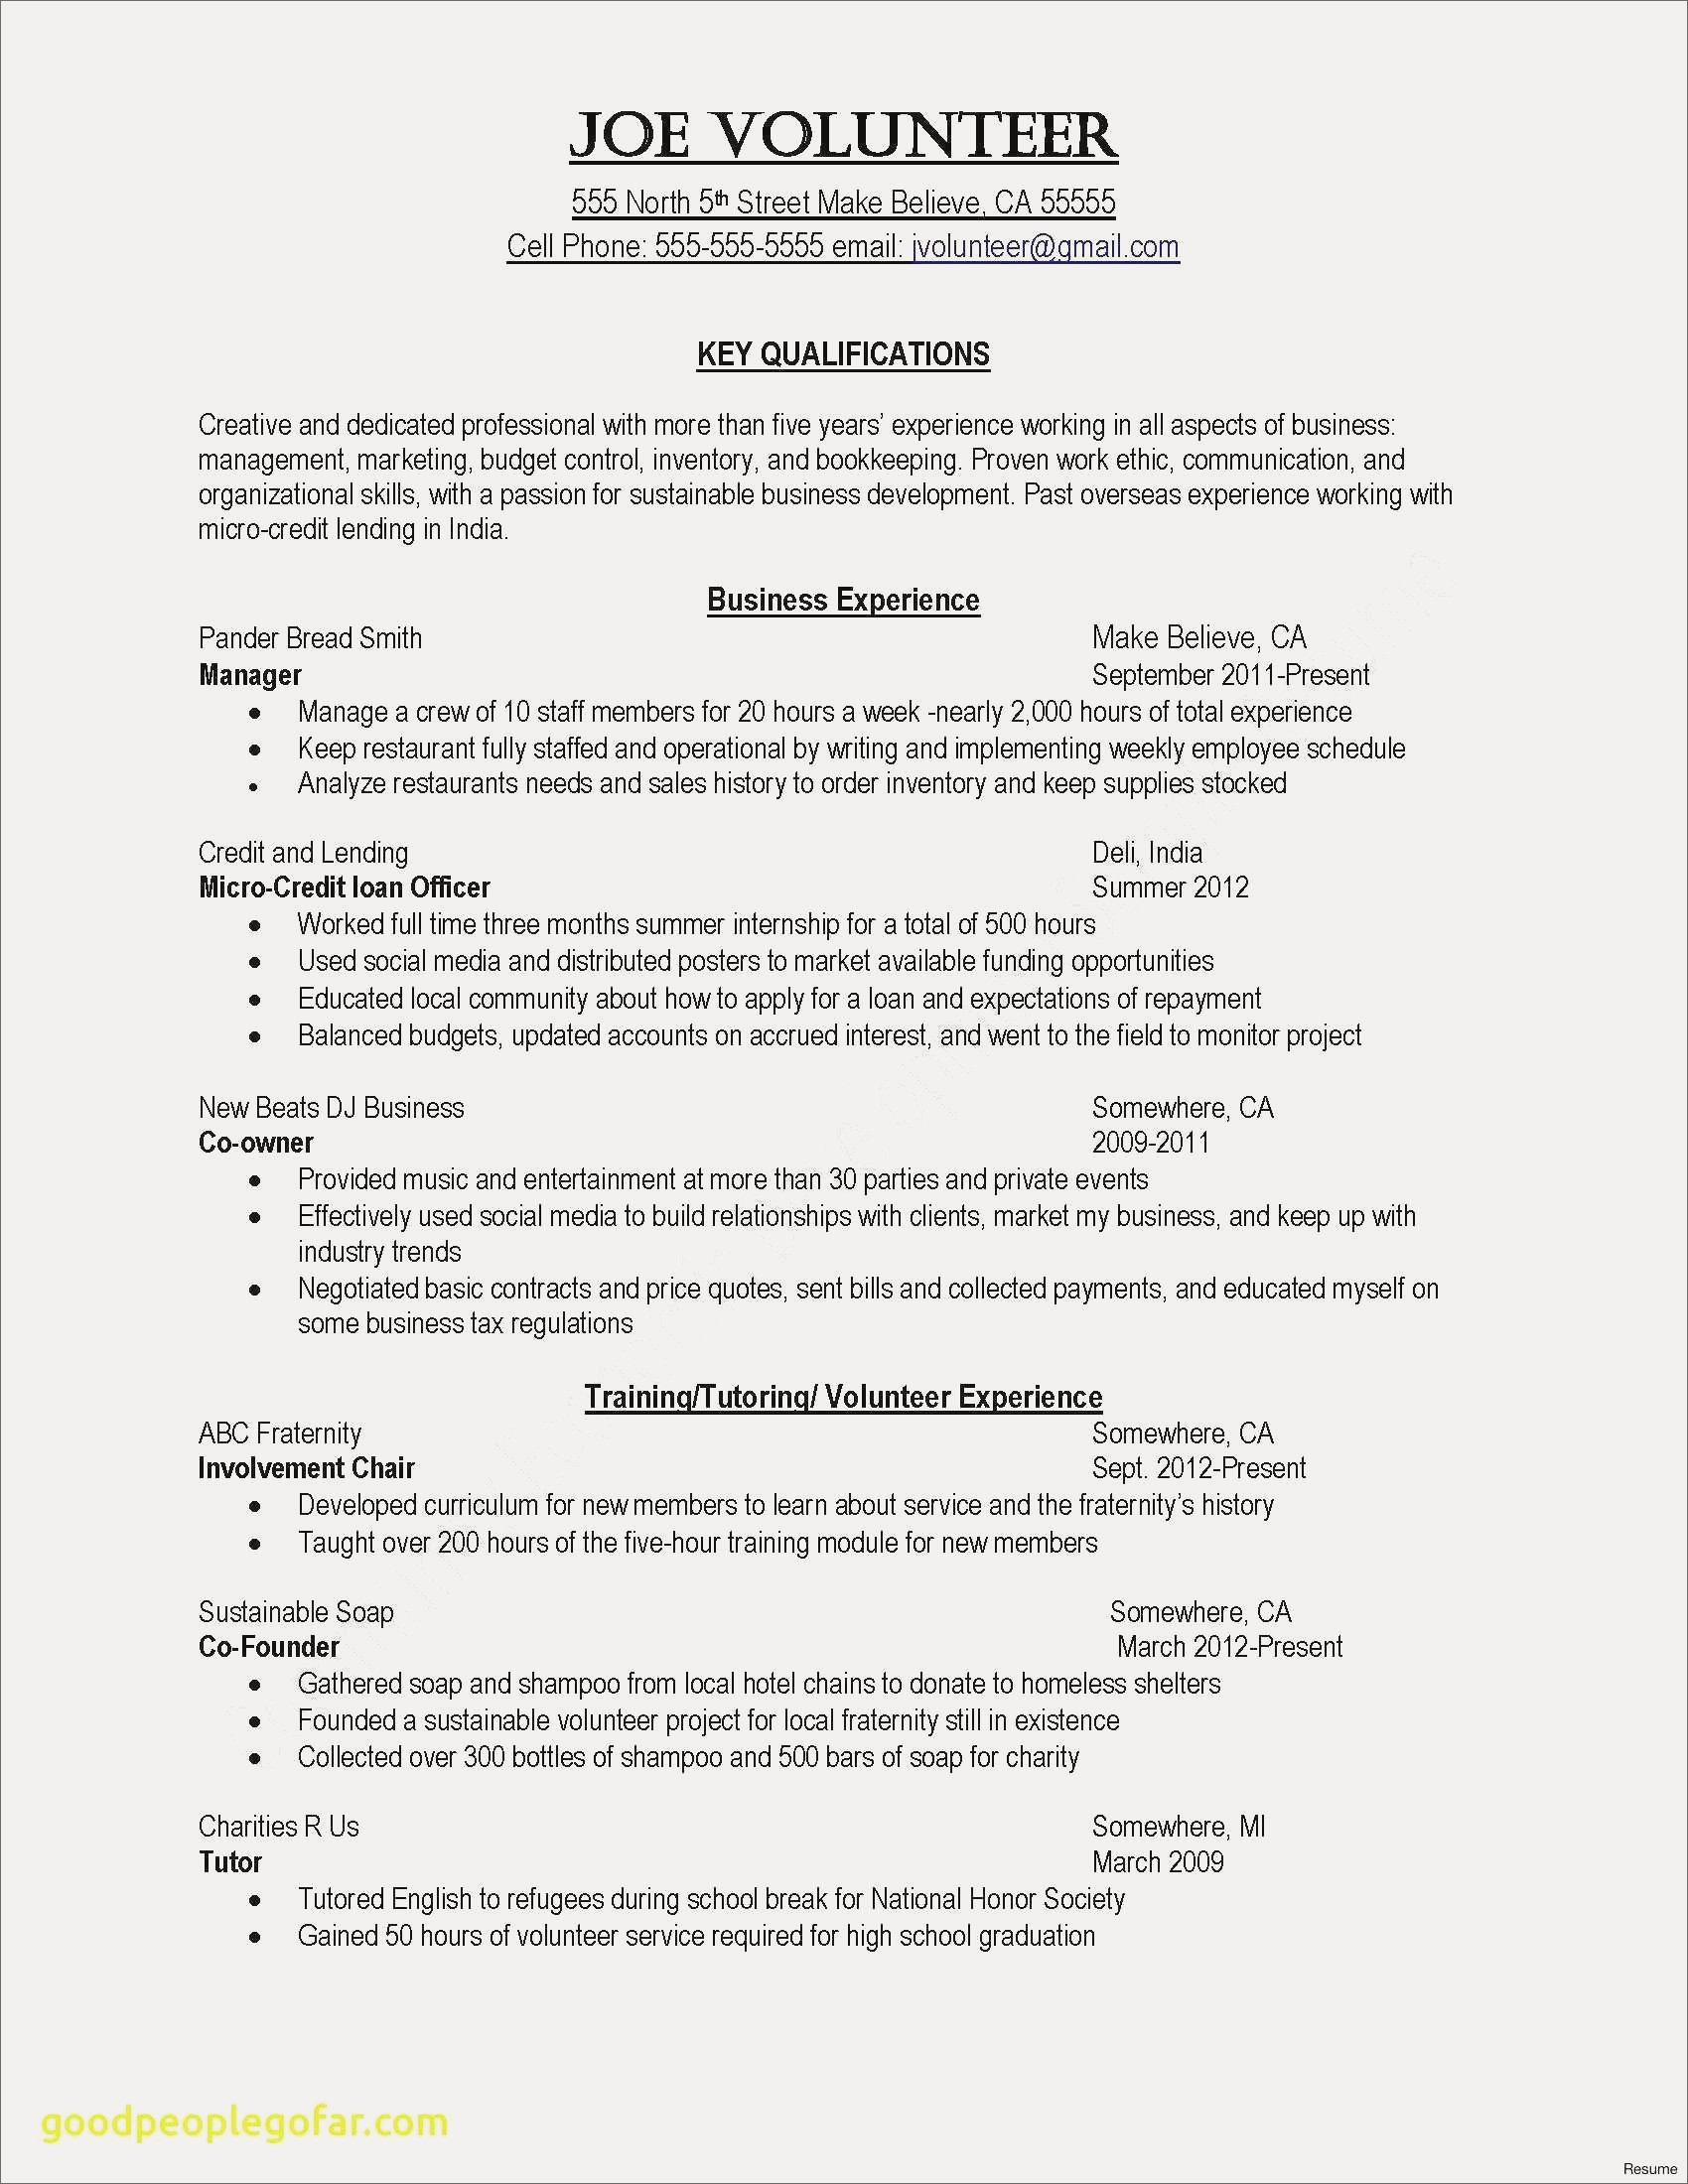 Best Resume Templates - Resume Templates for Teens Best Examples Resumes Fresh Resume